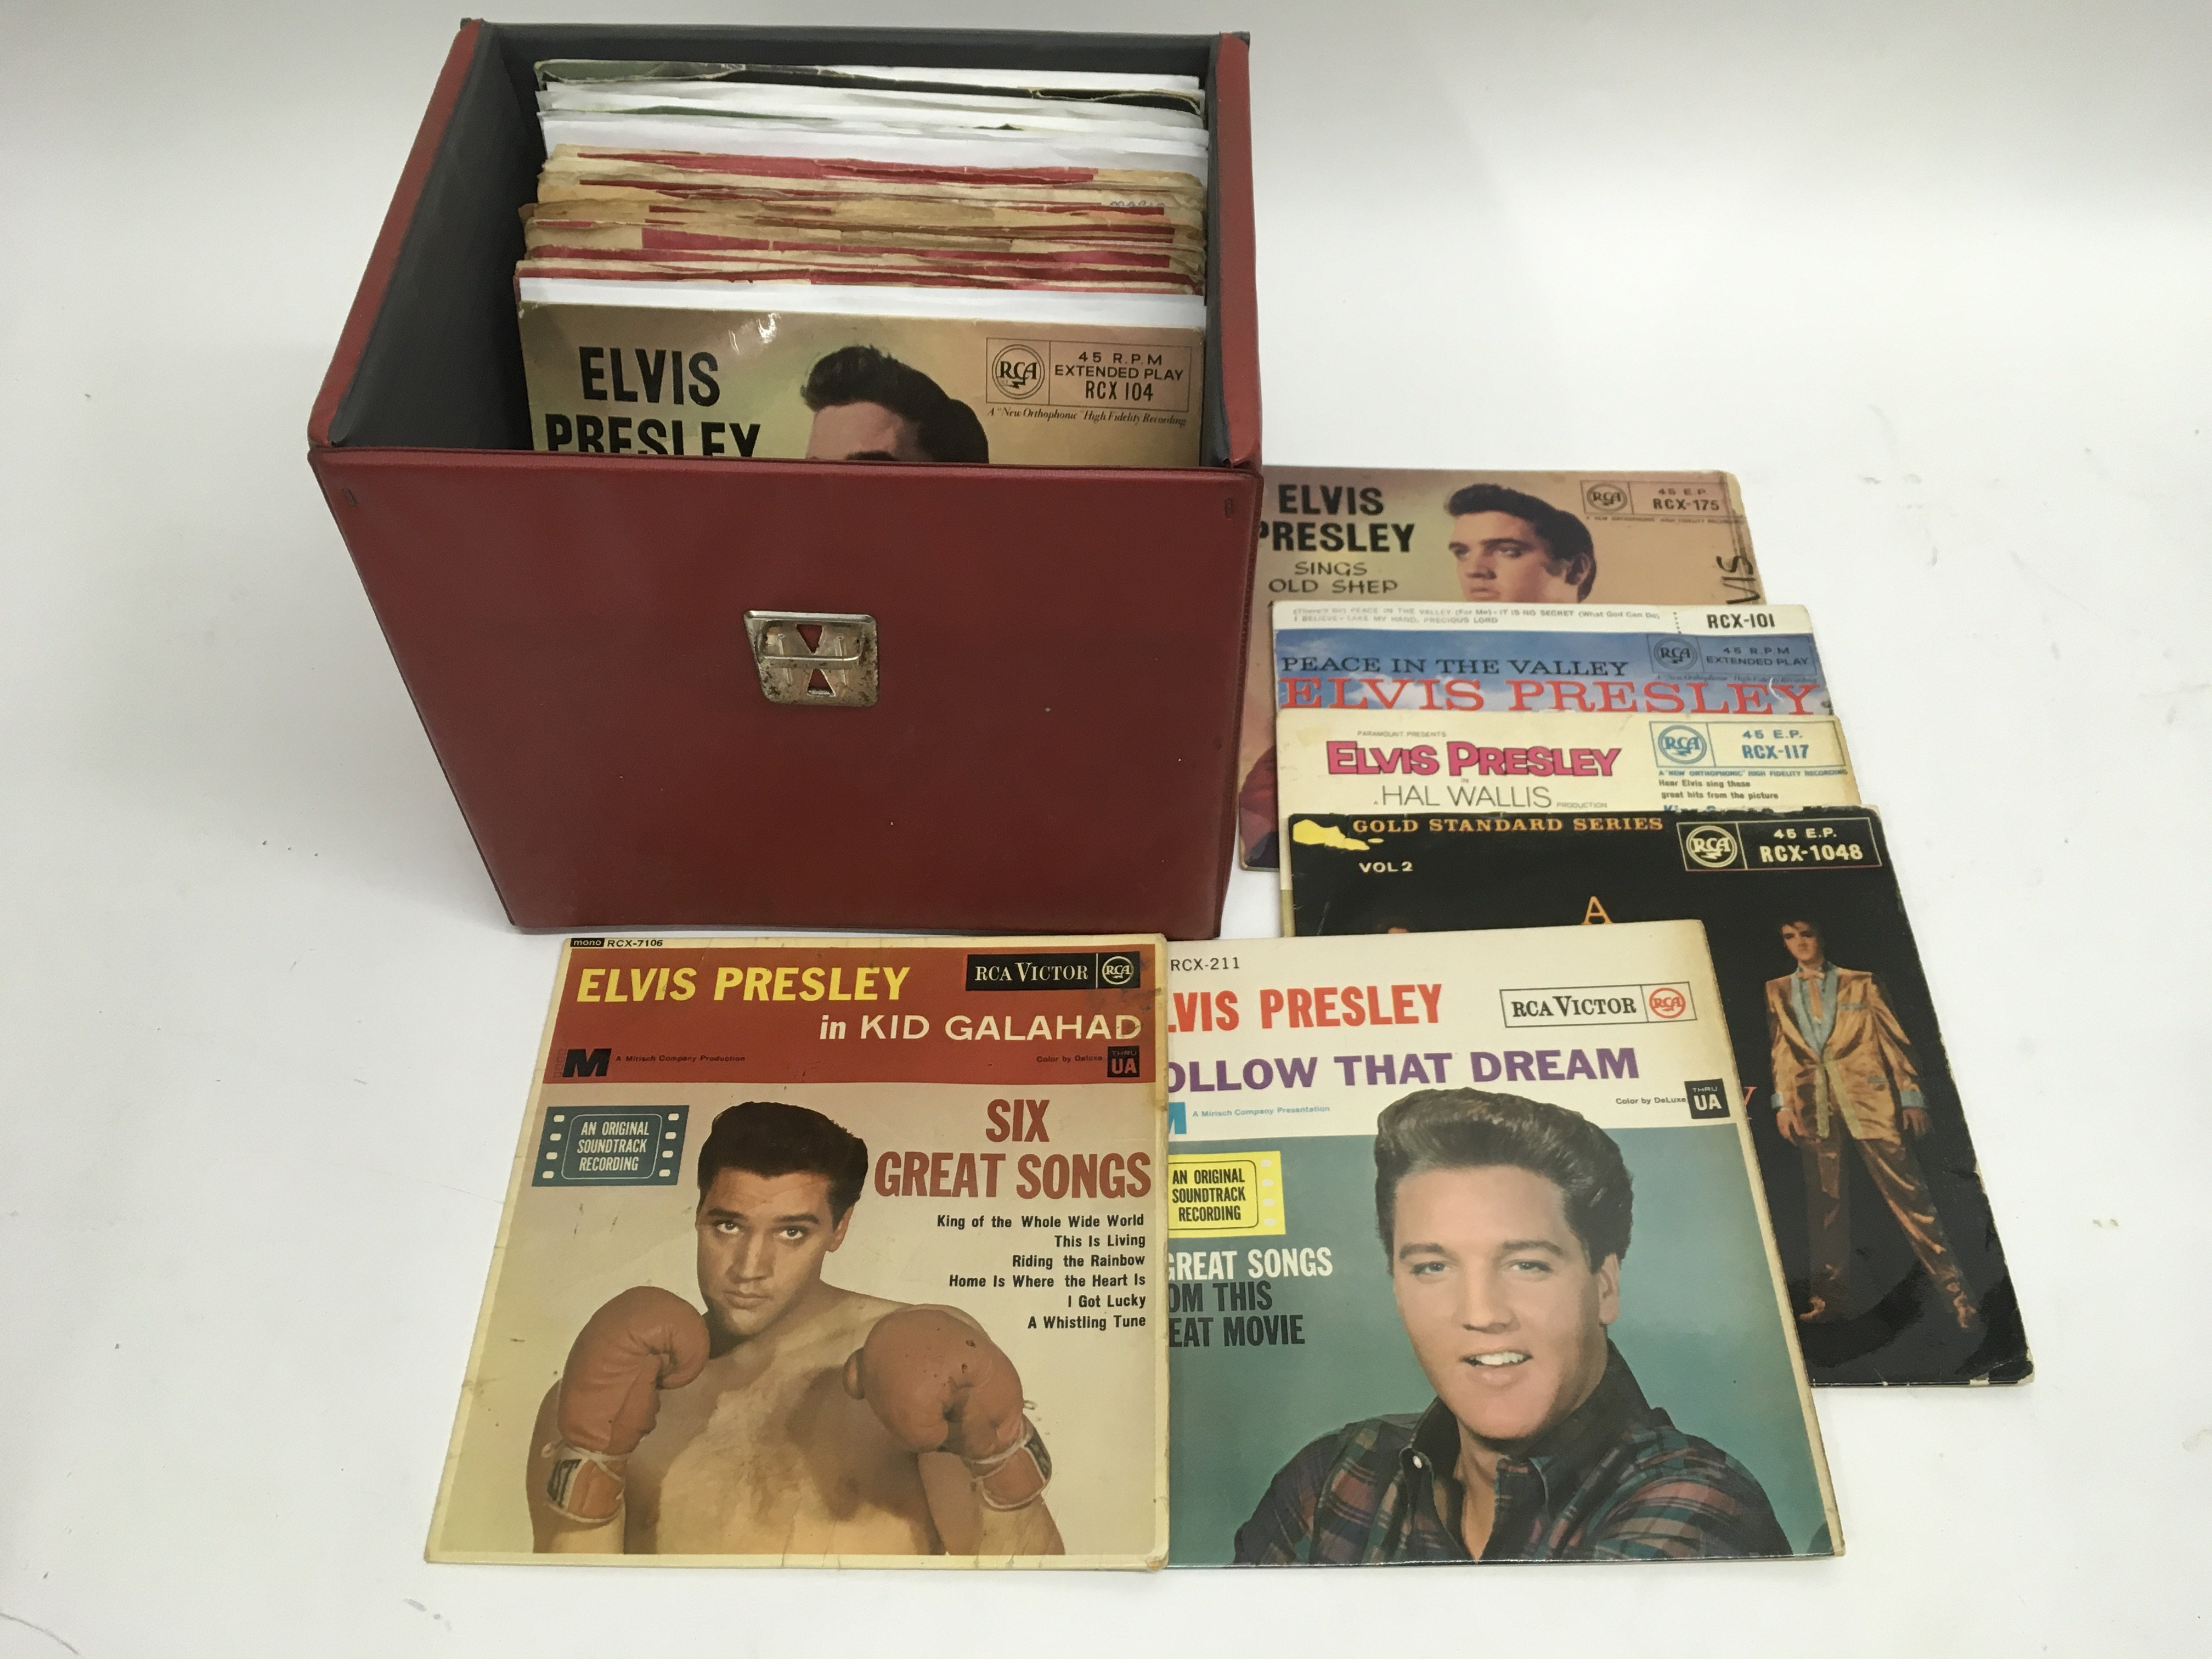 A collection of Elvis Presley LPs, picture discs, - Image 2 of 2